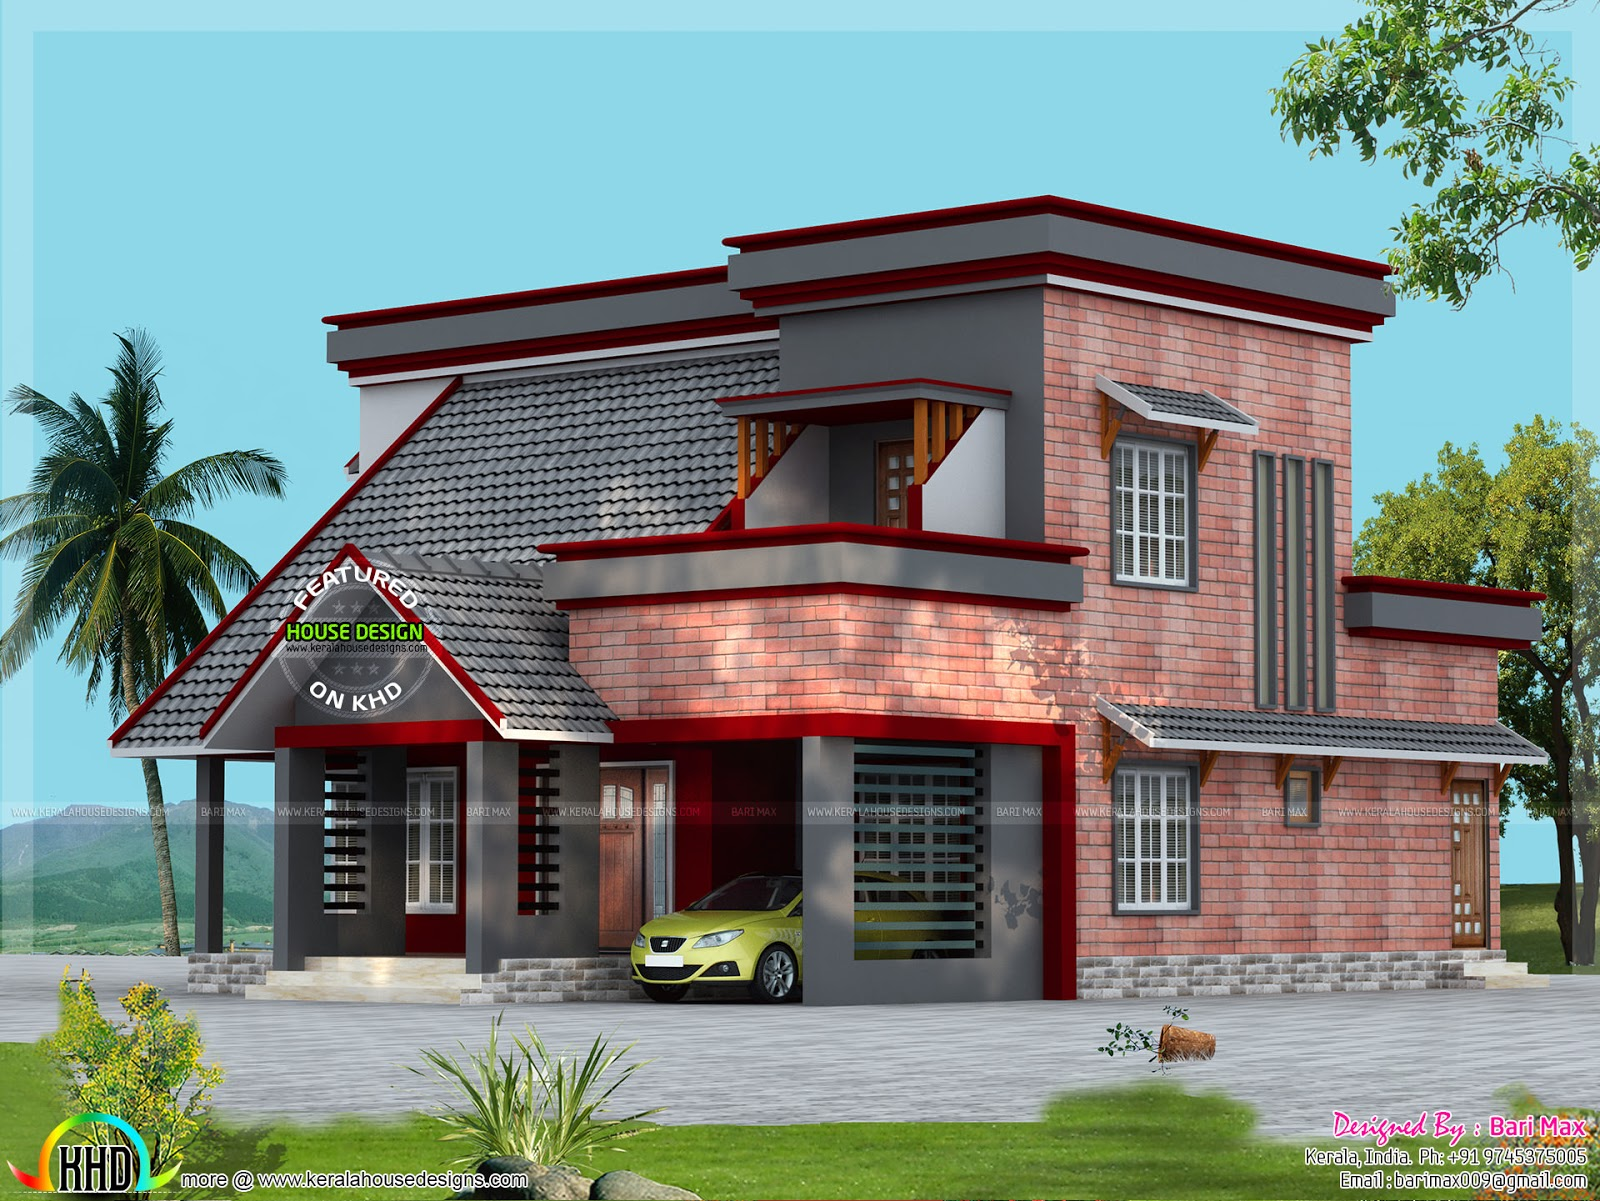 Brick wall mix house design - Kerala home design and floor ...